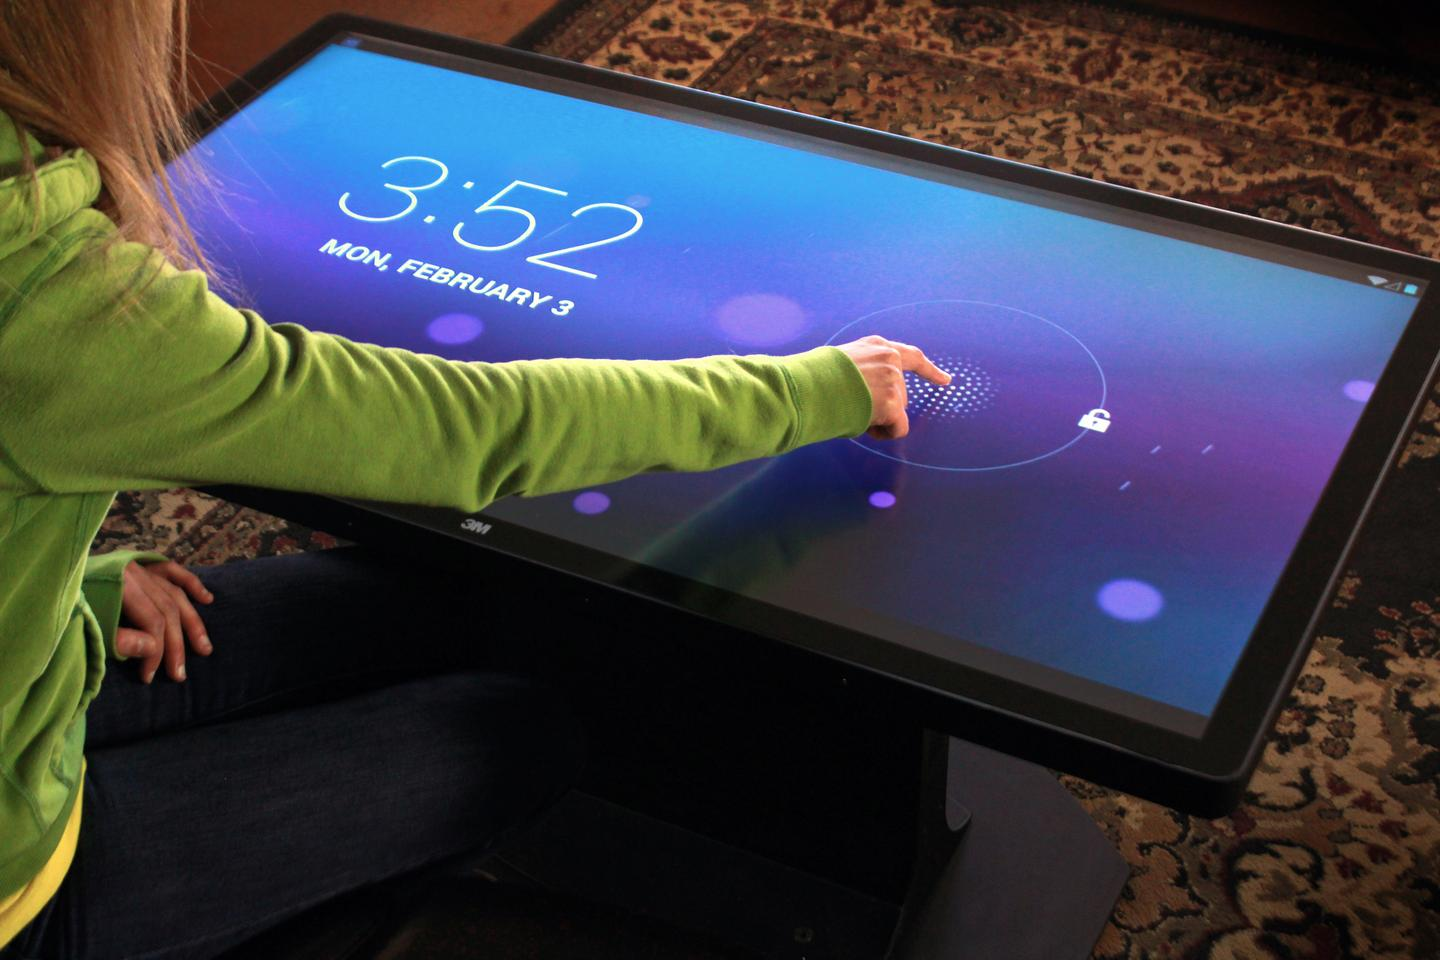 The Android version of Ideum's Platform 46 Coffee Table features the same 60-point simultaneous touch technology and integrated Core i7 computer system as its Windows 8 siblings